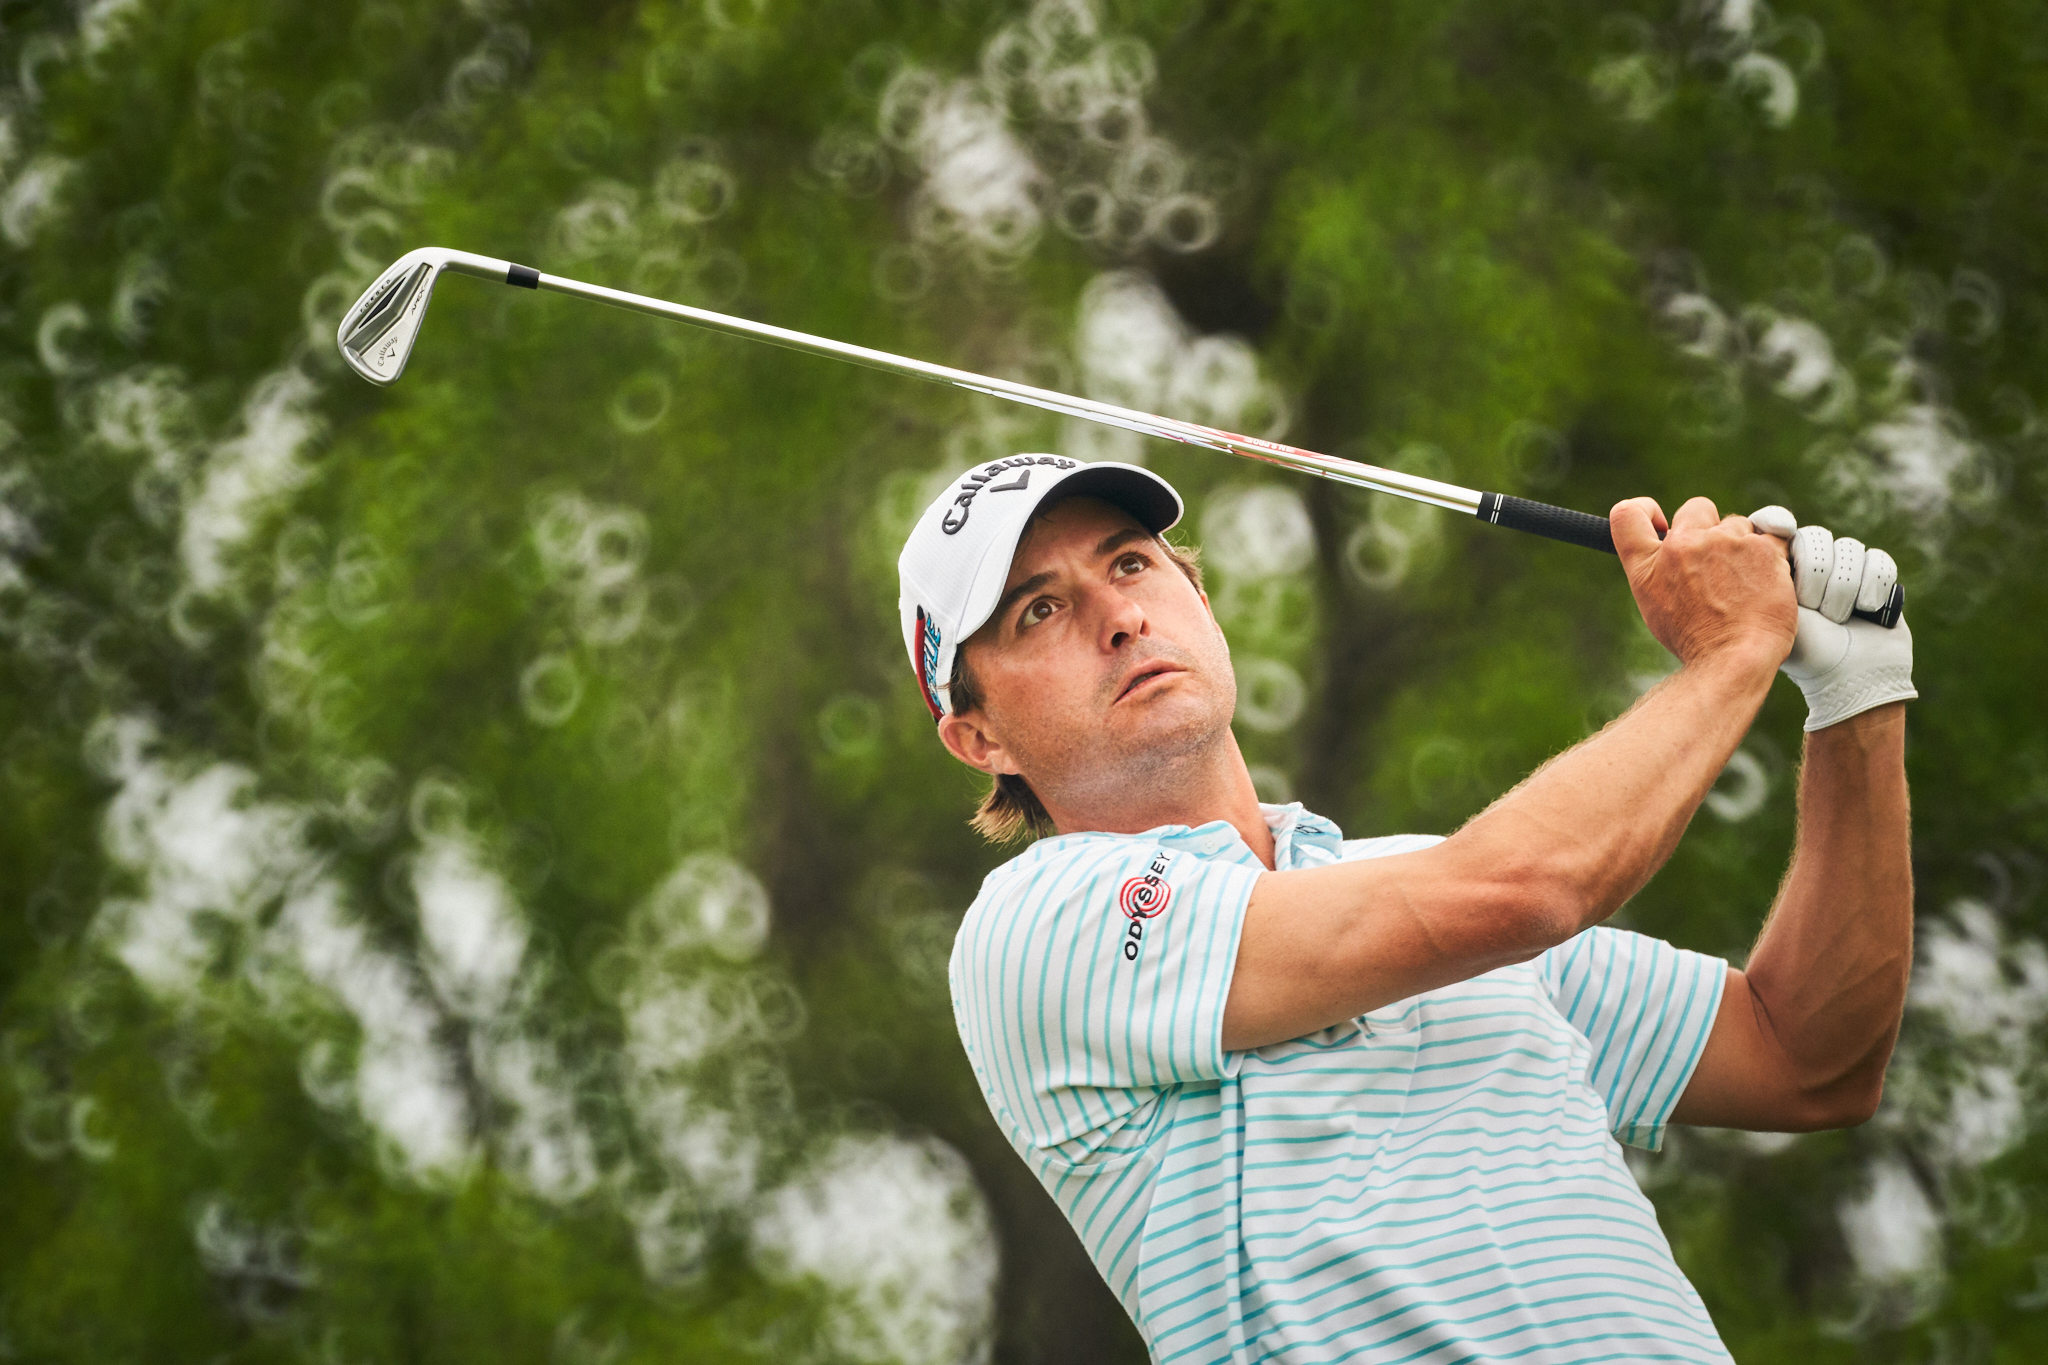 Kevin Kisner tees off at the 11th hole during the 2018 WGC Dell Technologies Match Play Championship at Austin Country Club.  Sony A9, Canon FD 500mm f8 mirror lens  with a Fotodiox Canon FD-Sony E Mount adapter.